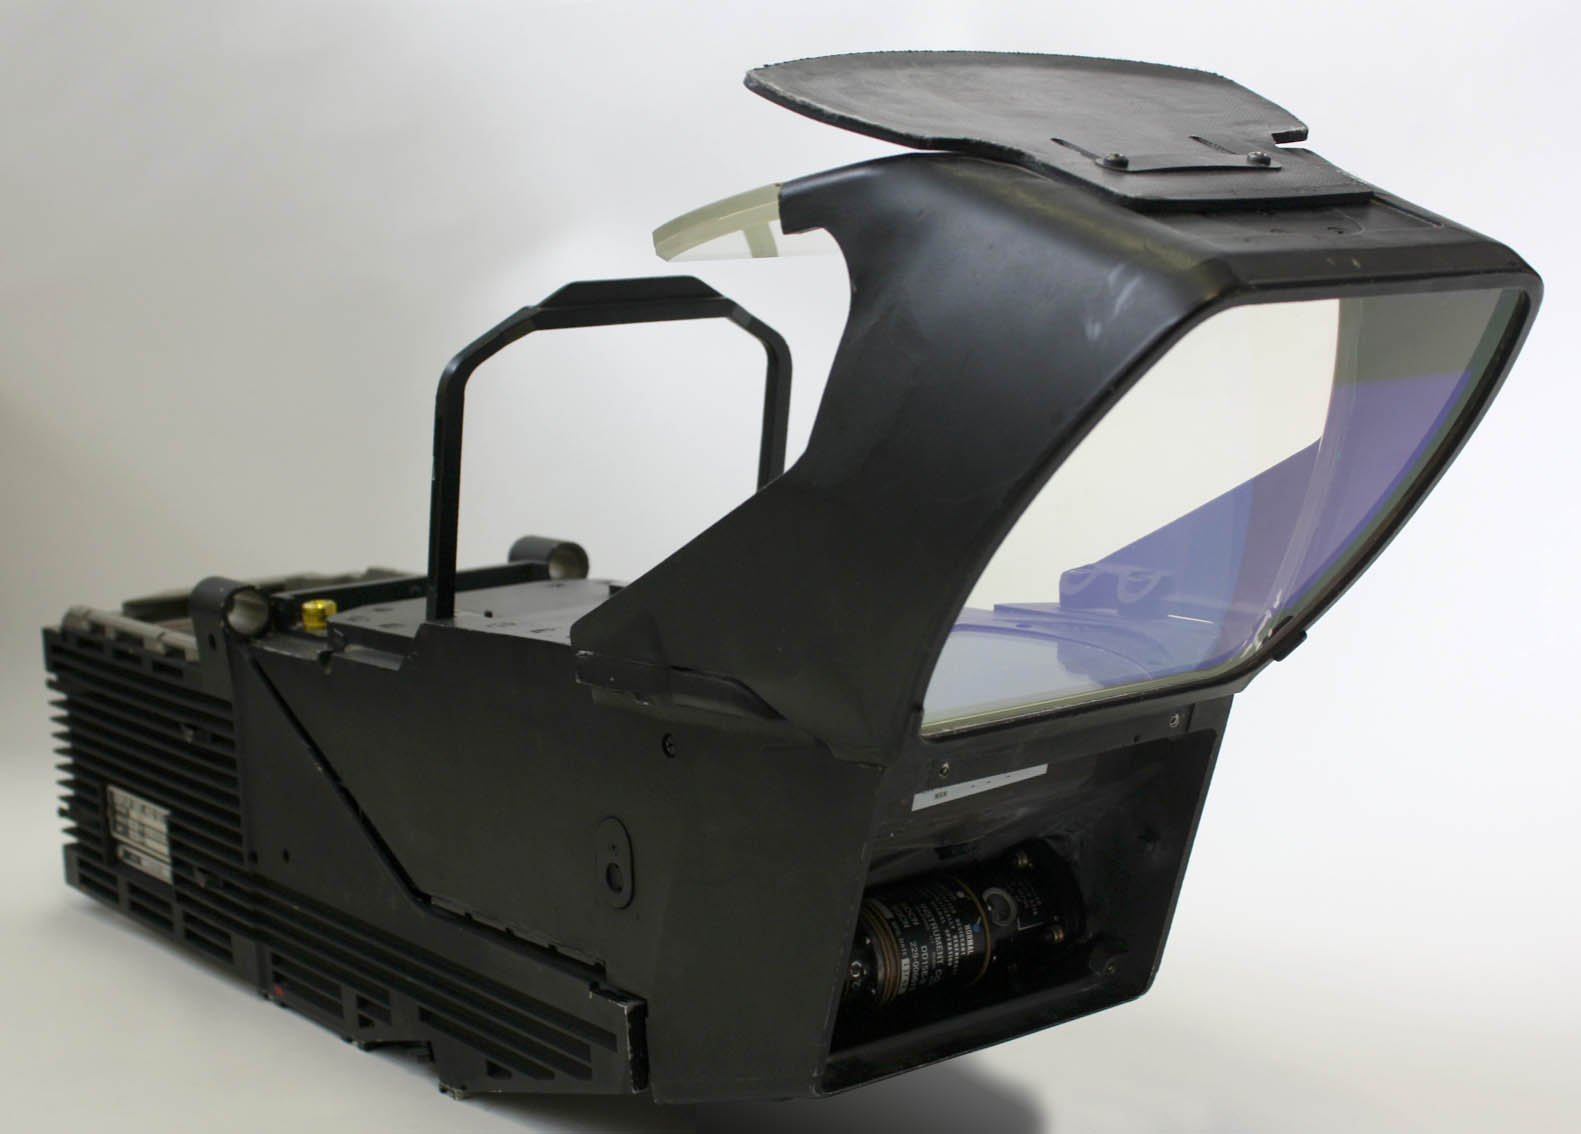 F-16 LANTIRN HUD PDU Chassis & Optics